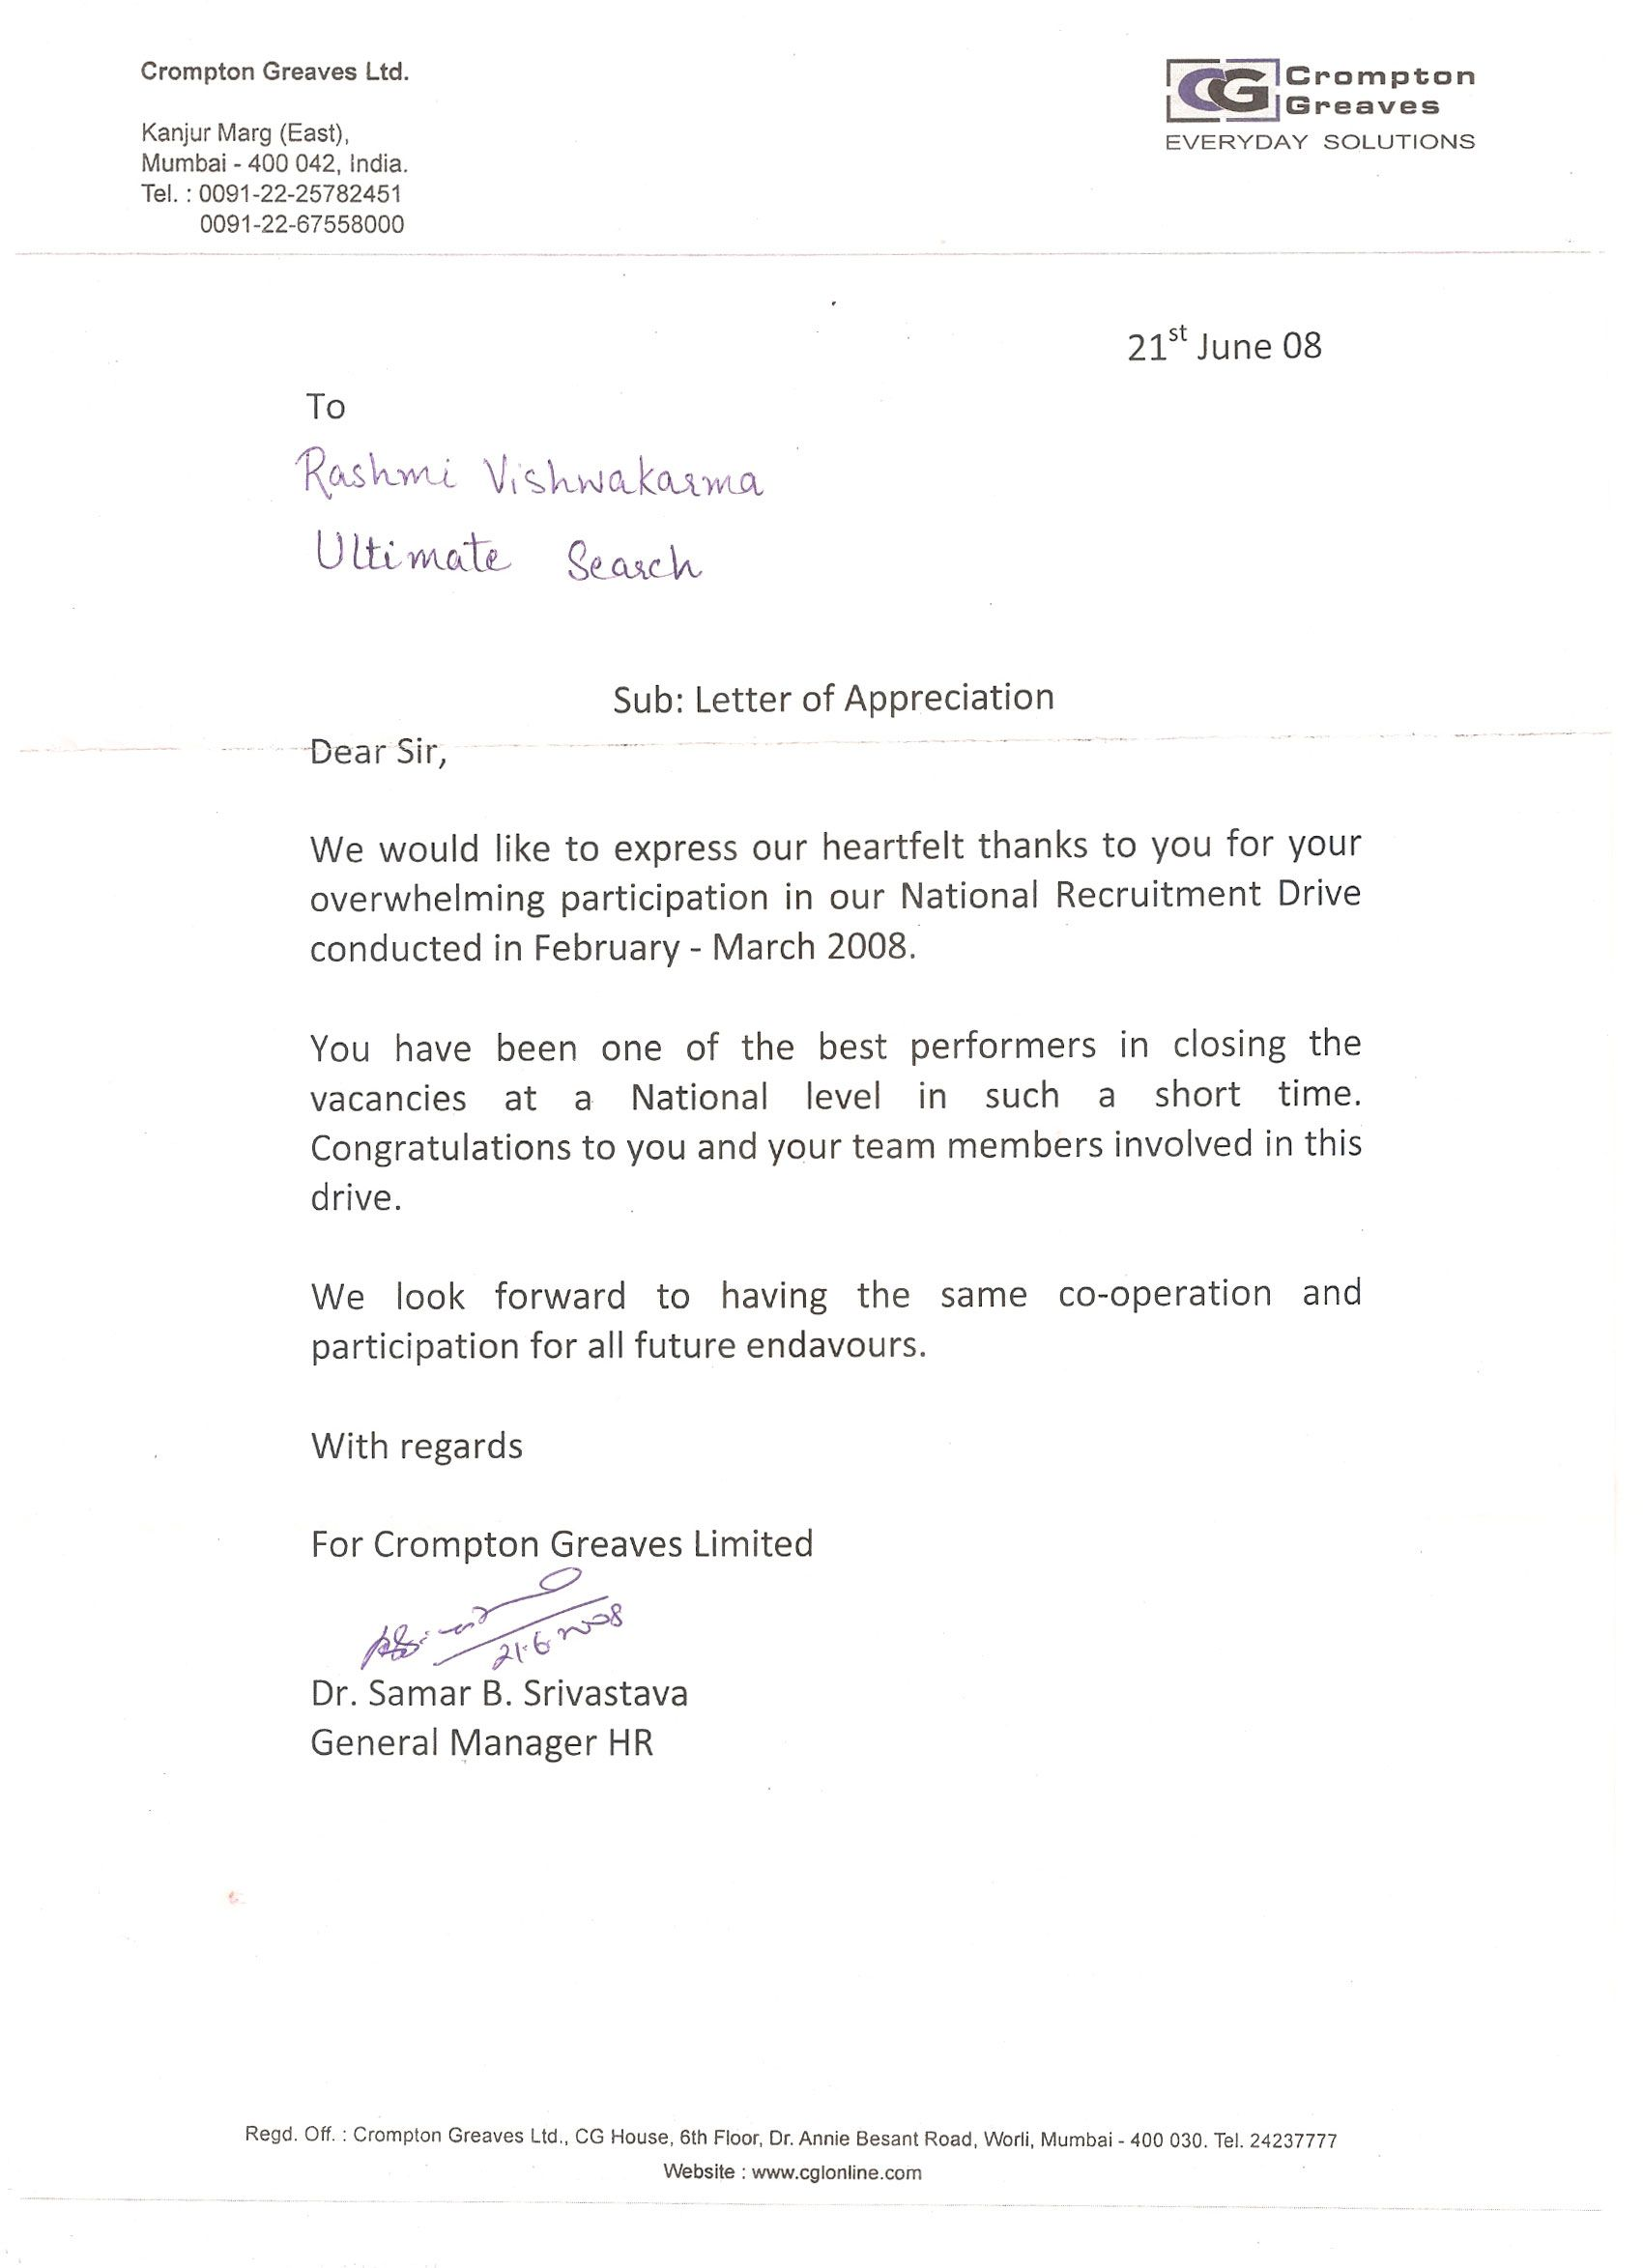 Letter Appreciation From Crompton Greaves For Good Performance